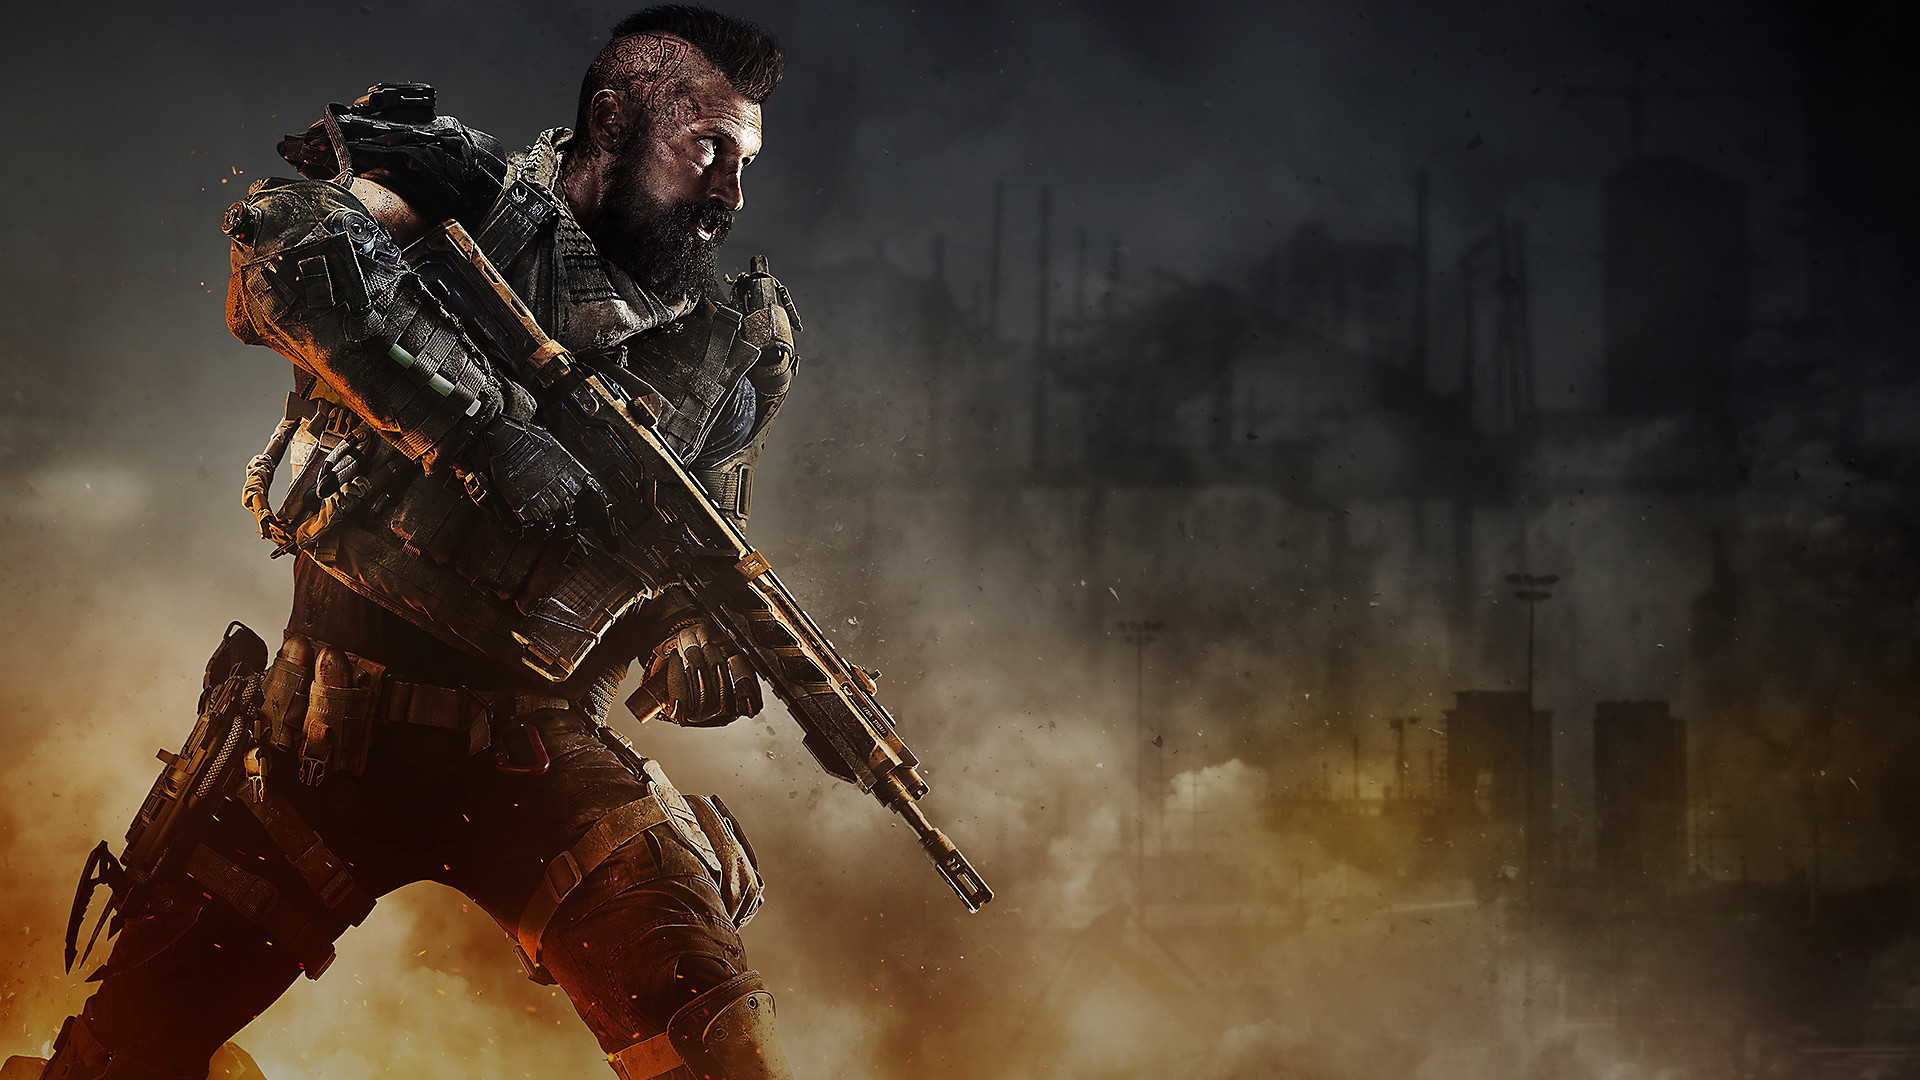 Call Of Duty Black Ops 4 Desktop Wallpapers Computer Background Images